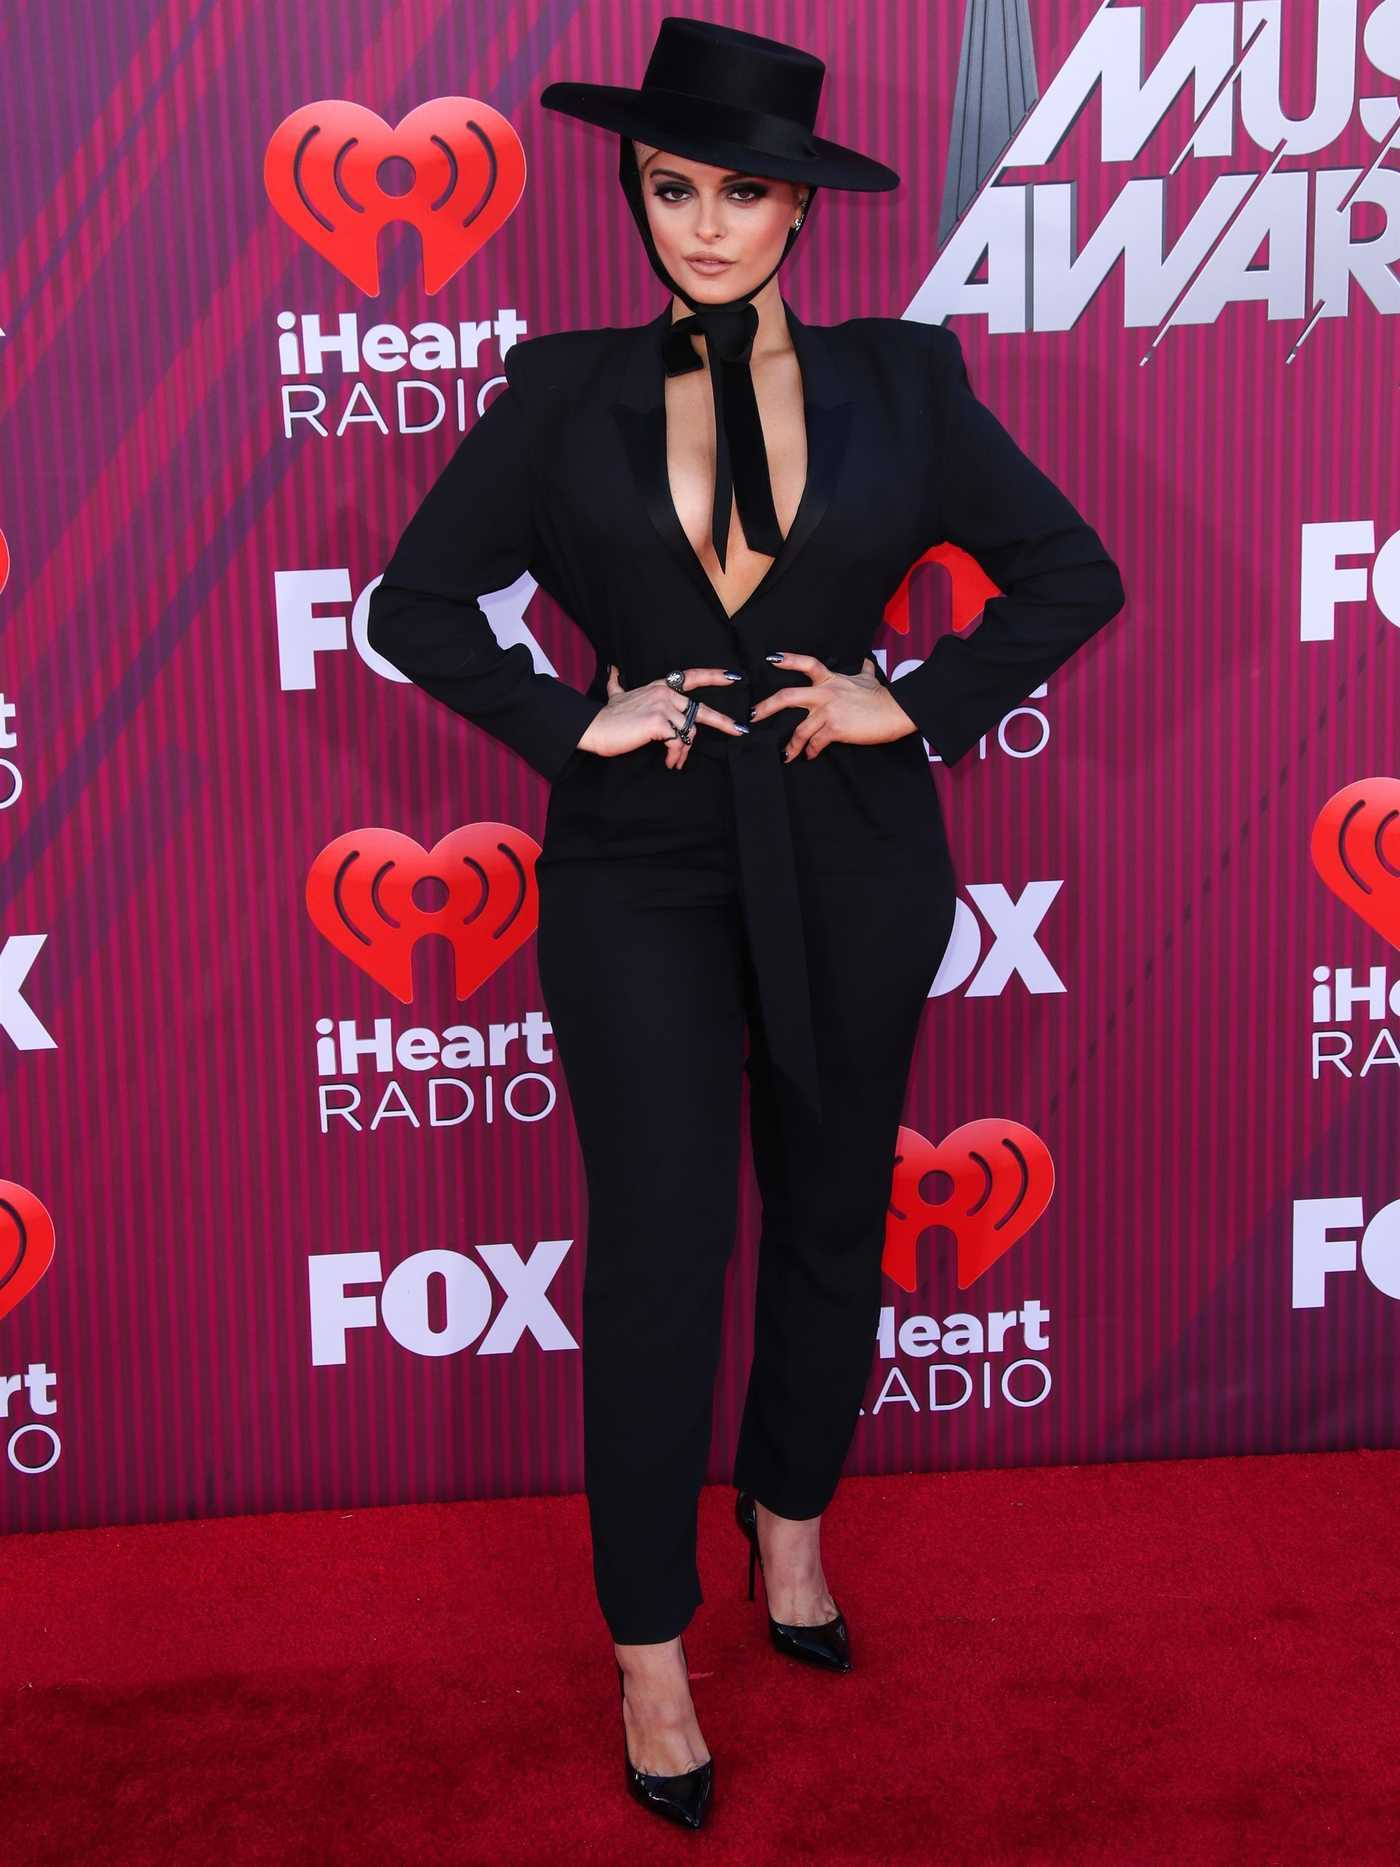 Bebe Rexha Attends 2019 iHeartRadio Music Awards at Microsoft Theater in LA 03/14/2019